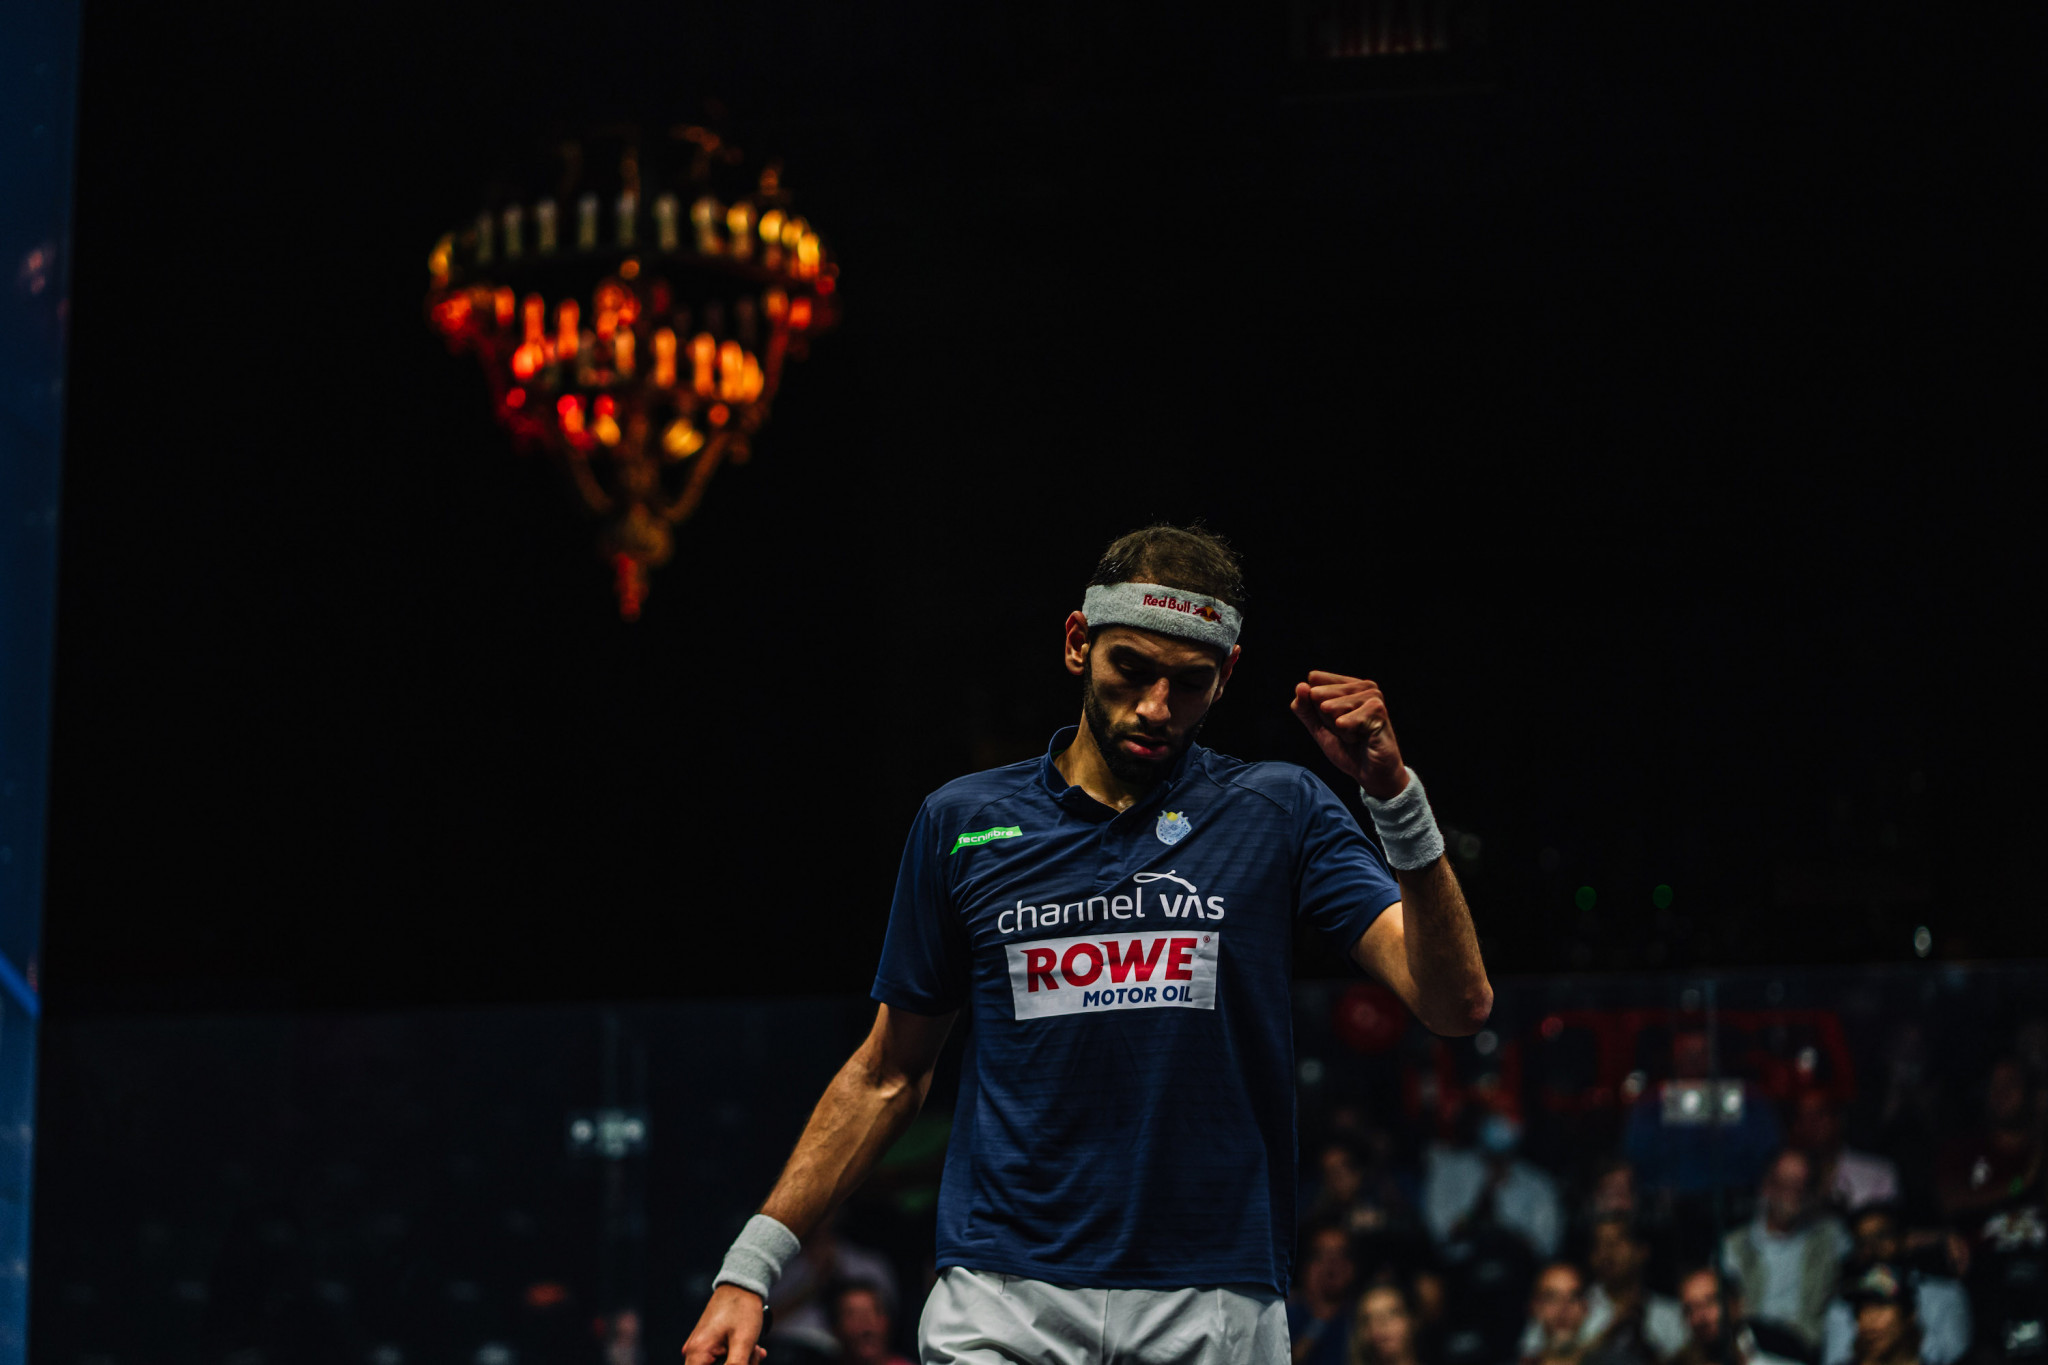 Top eight seeds in men's and women's draws to contest quarter-finals at PSA World Championships